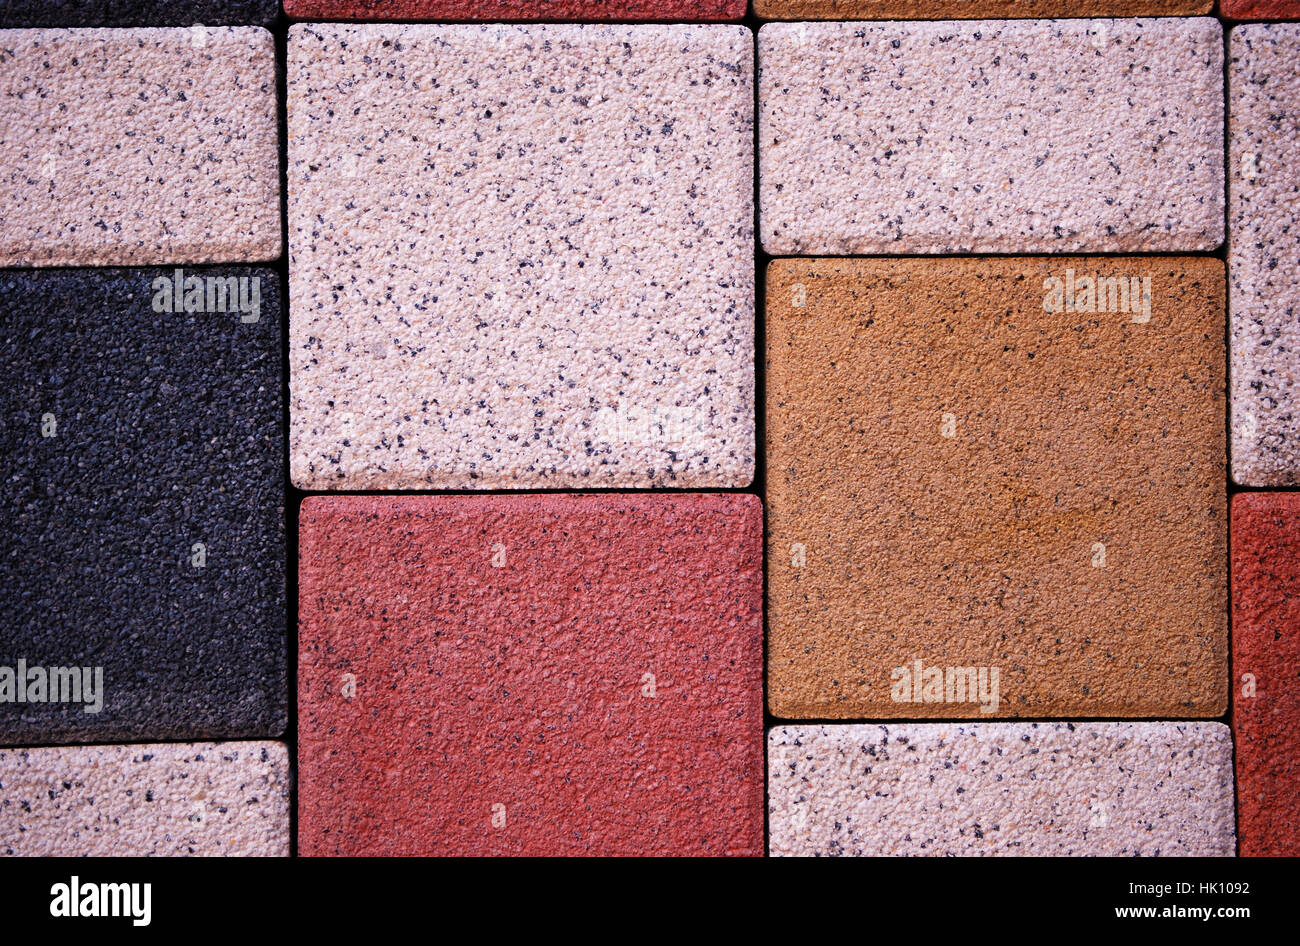 Different sizes of pavement tiles background - Stock Image